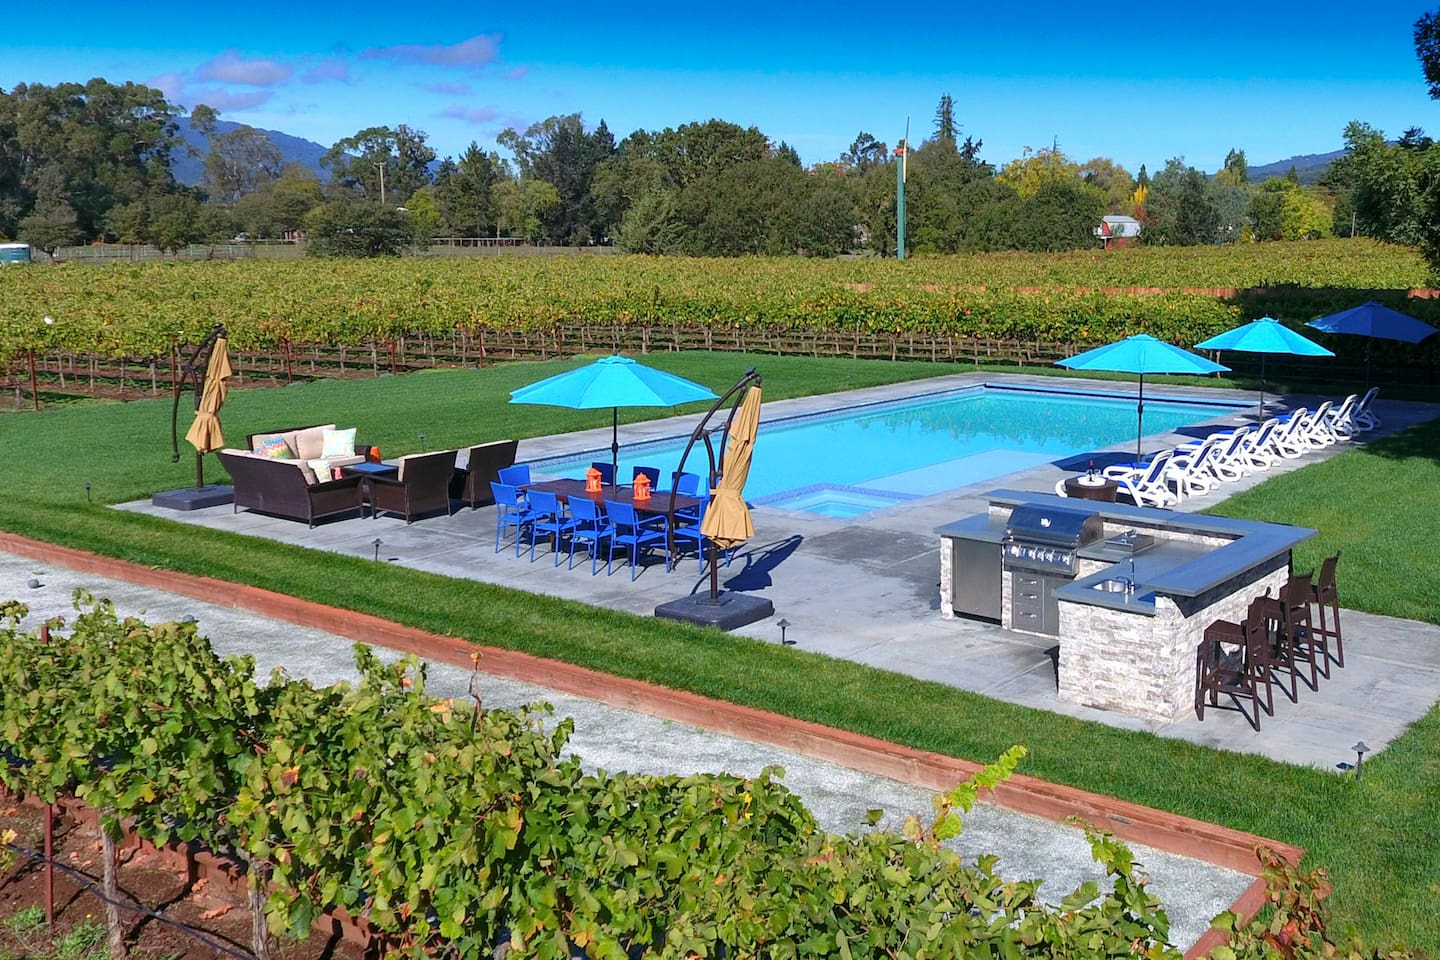 Relax by the 25 x 50' pool with spa. Brand new outdoor kitchen, dining and lounging spots surrounded by vines.